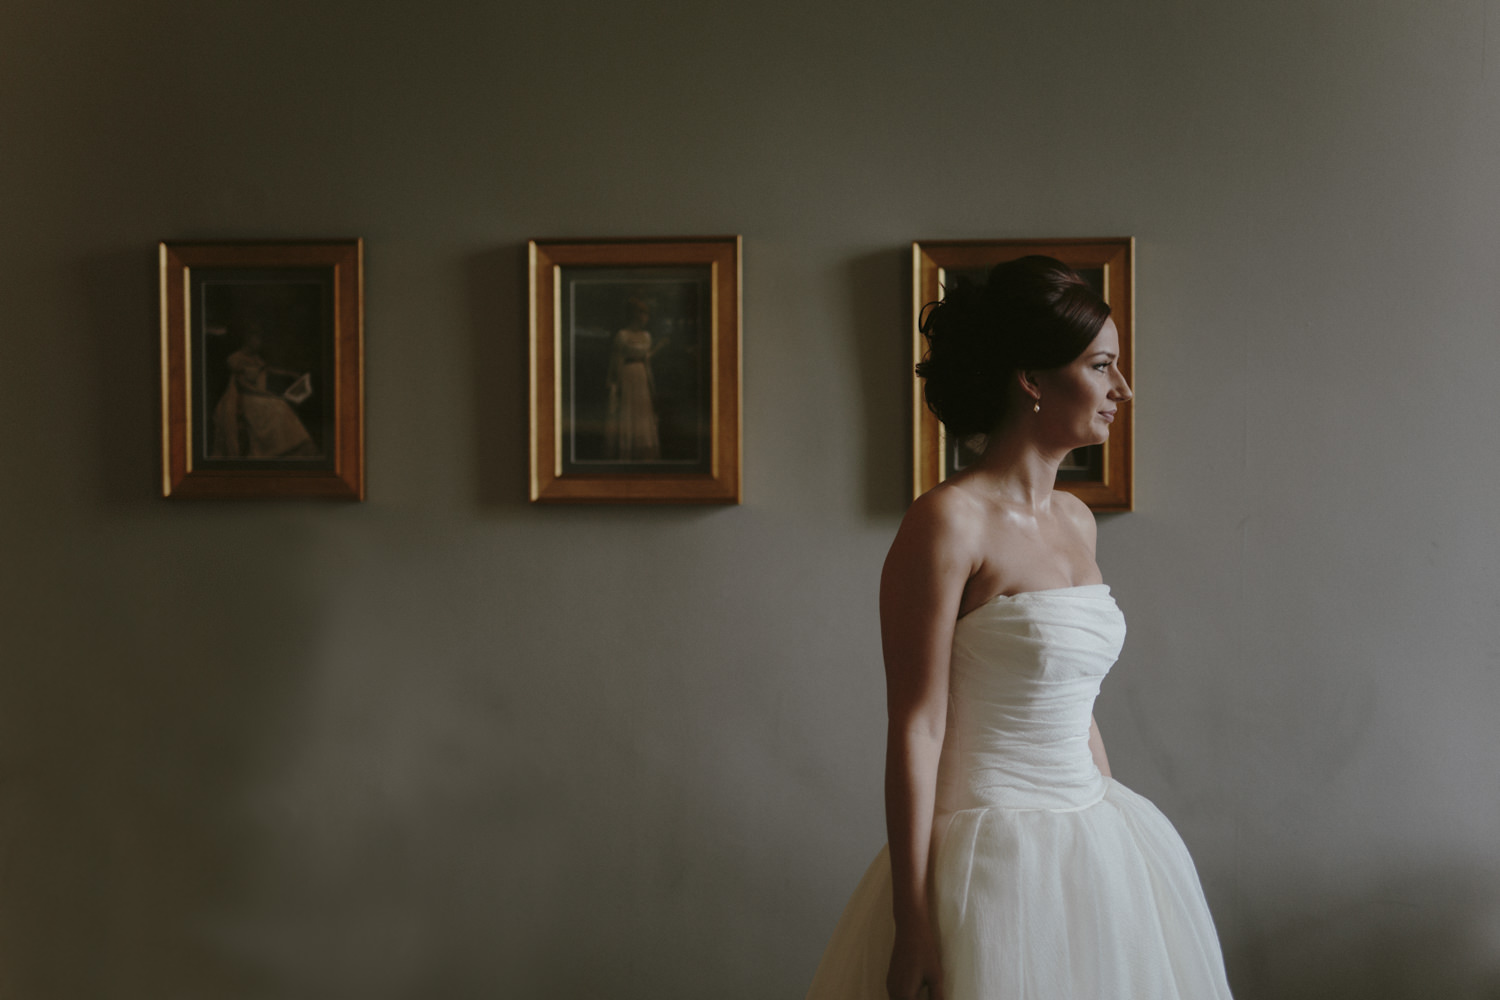 Askham-Hall-Wedding-Websize-85.jpg